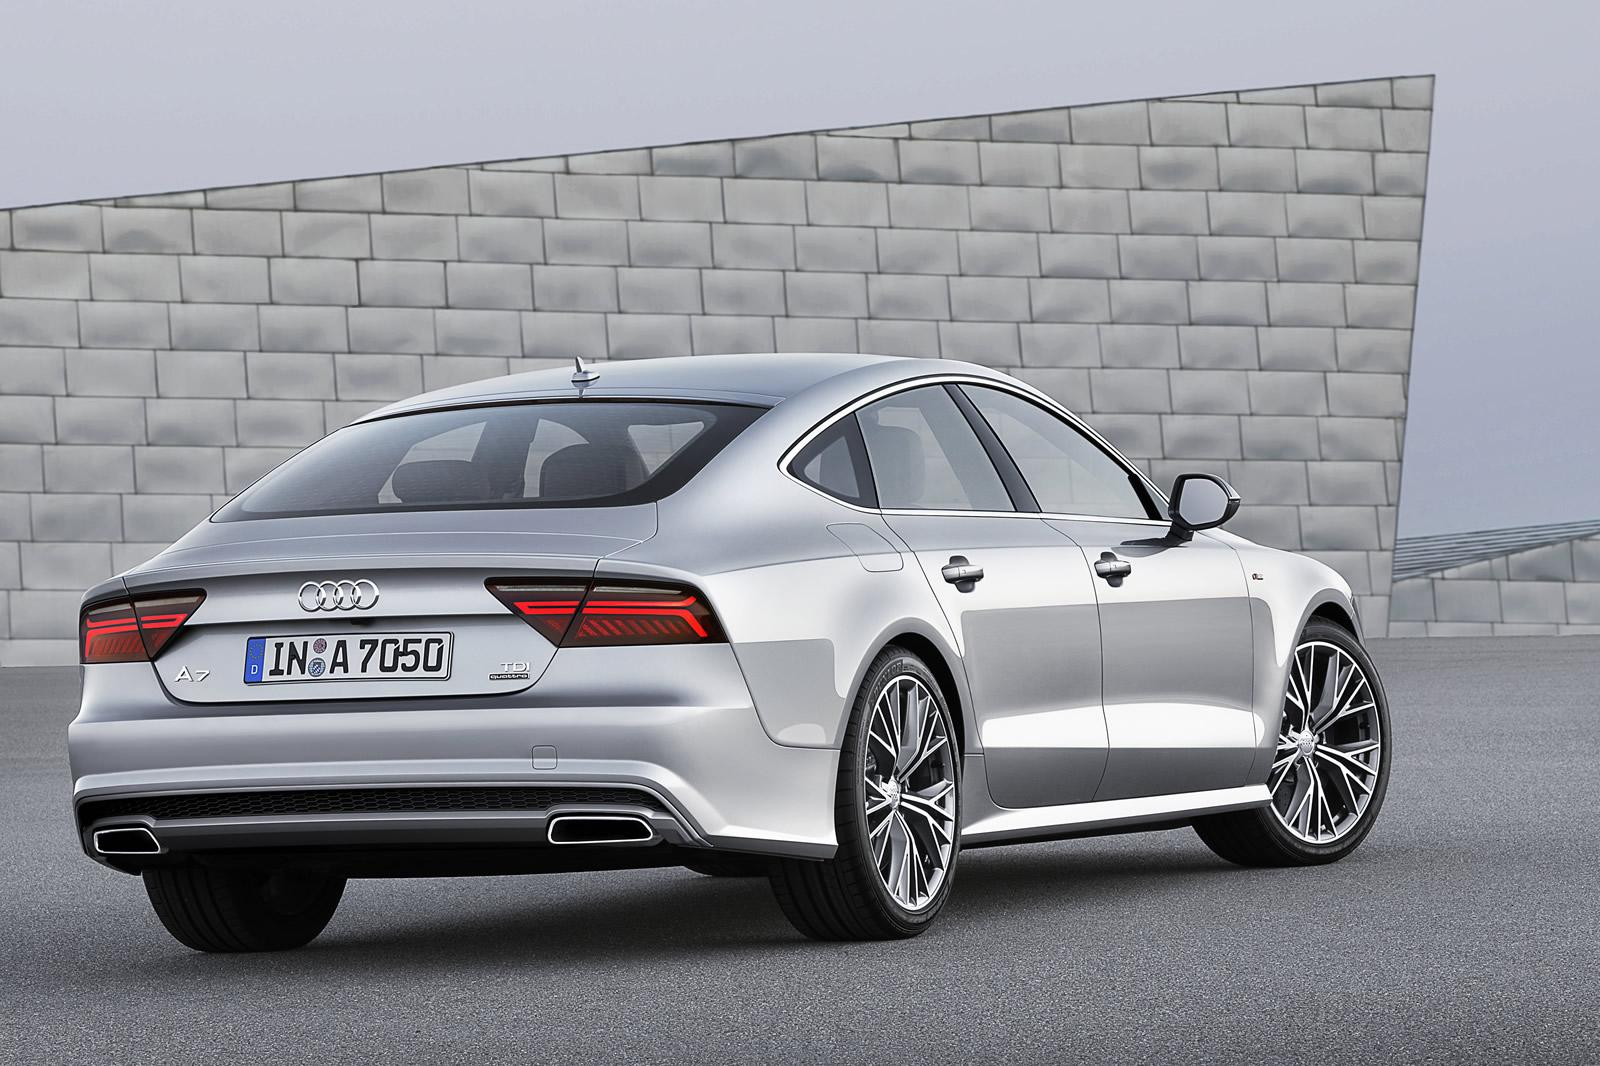 Image of the facelift A7 sportback